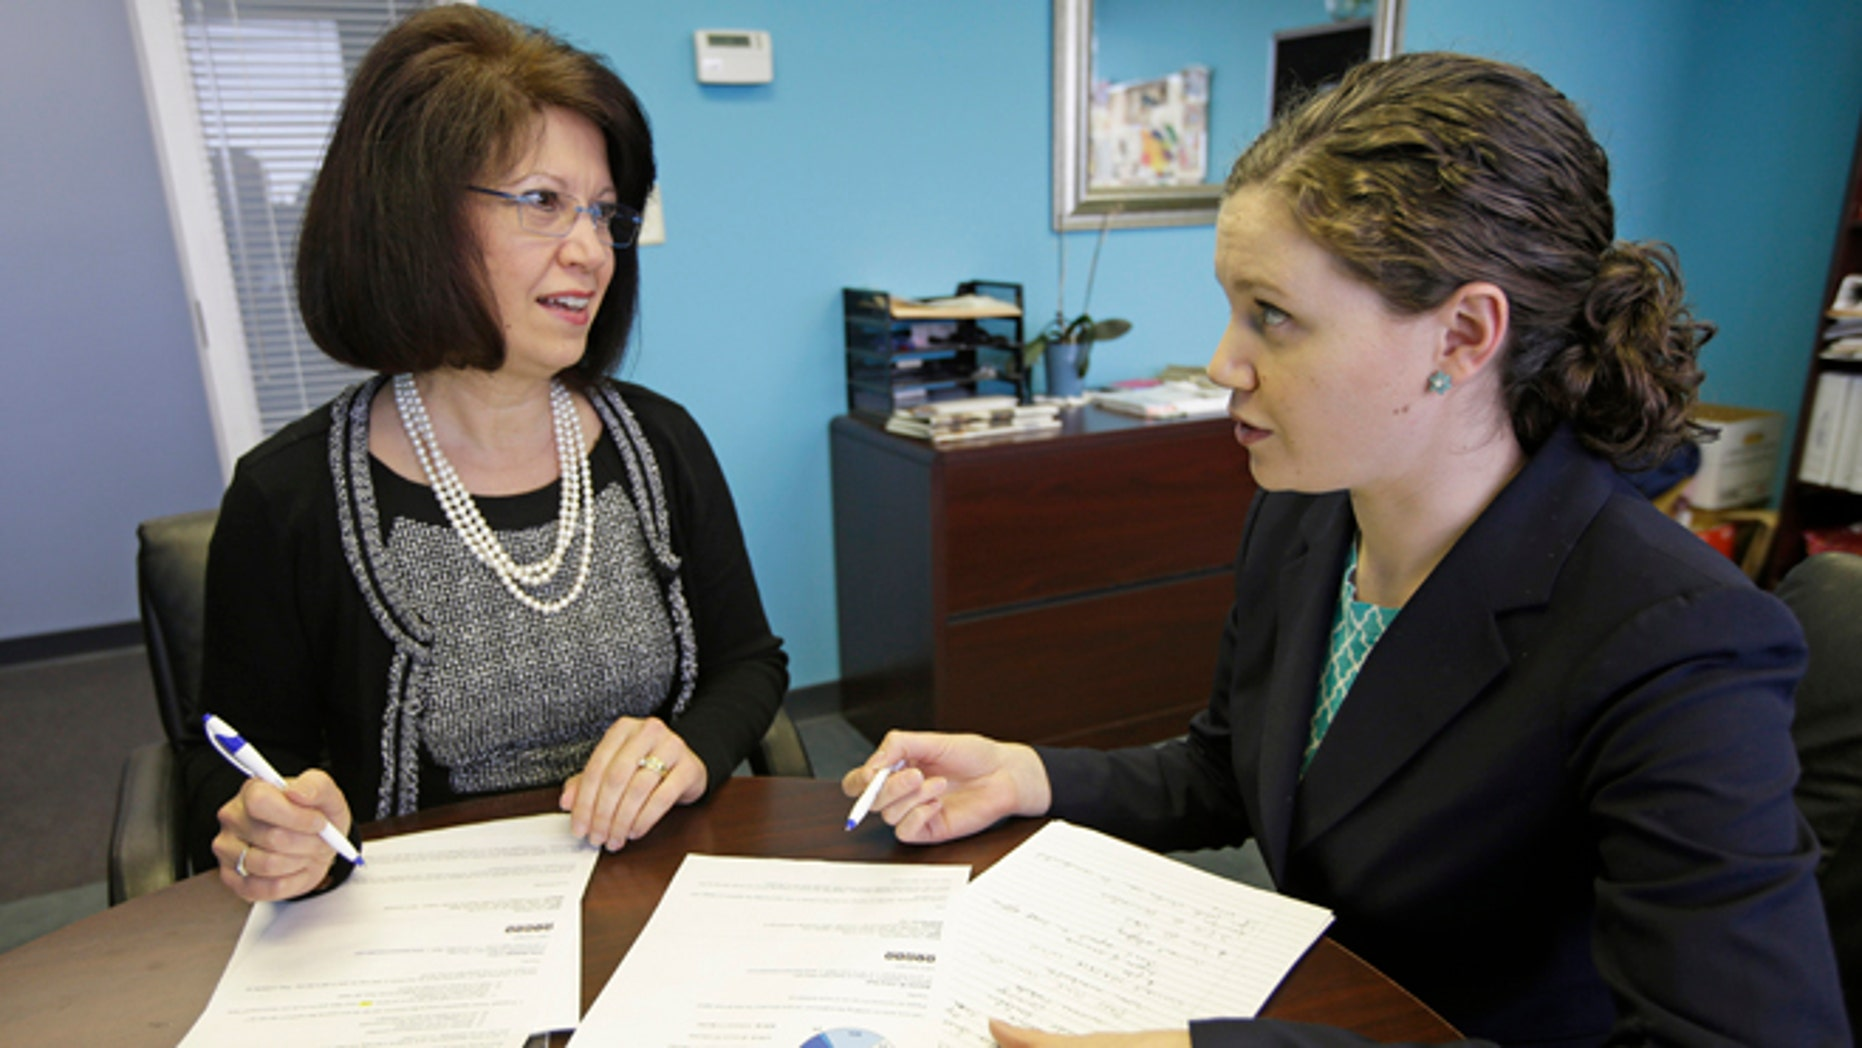 In this Jan. 22, 2014 photo, Tillie Hidalgo Lima, chief executive officer of Best Upon Request, a concierge services provider, left, works with marketing director Jessica Lima Bollin in their offices in Cincinnati. A mentoring program created by the Cincinnati USA Regional Chamber called a minority business accelerator has helped Lima get contracts with Fifth Third Bank Corp. and the Cincinnati Children's Hospital Medical Center. (AP Photo/Al Behrman)